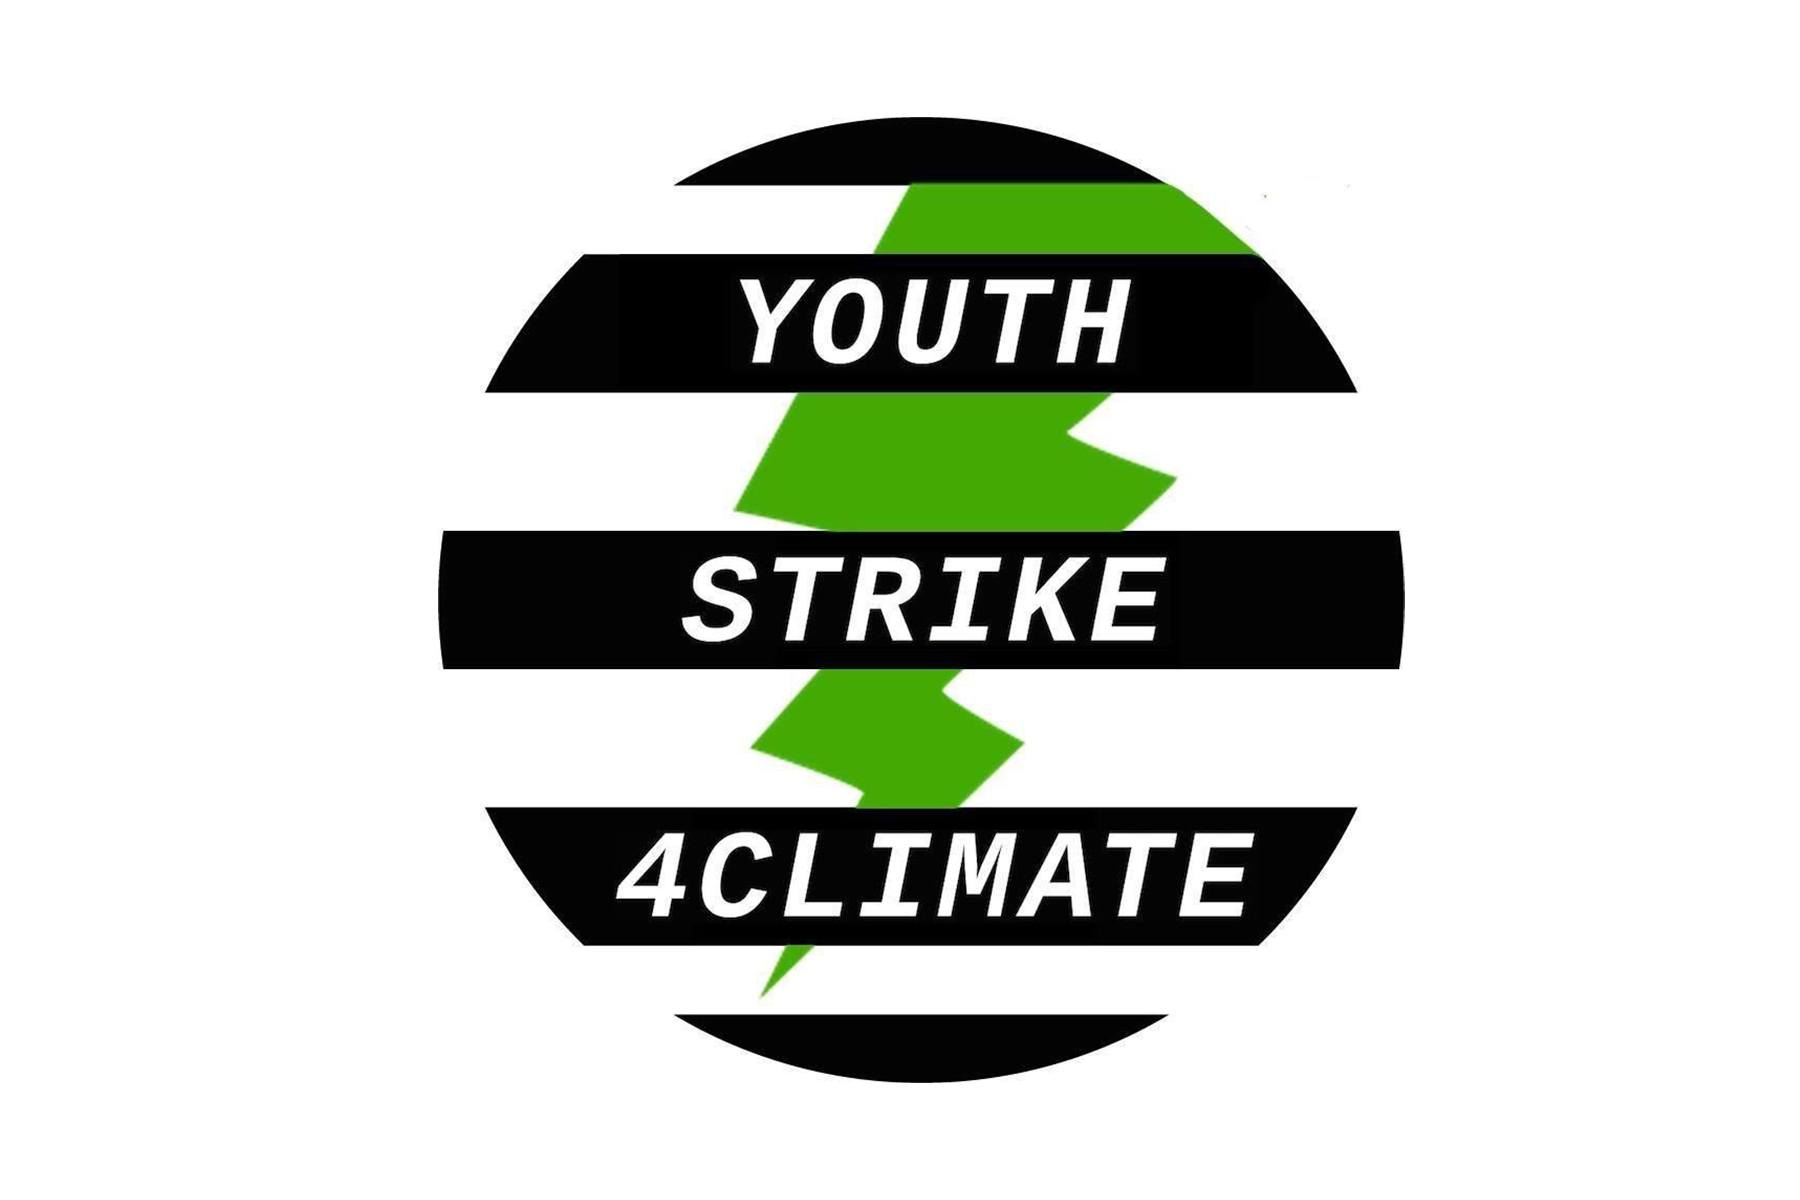 Youth Strike 4 Climate Movement  image